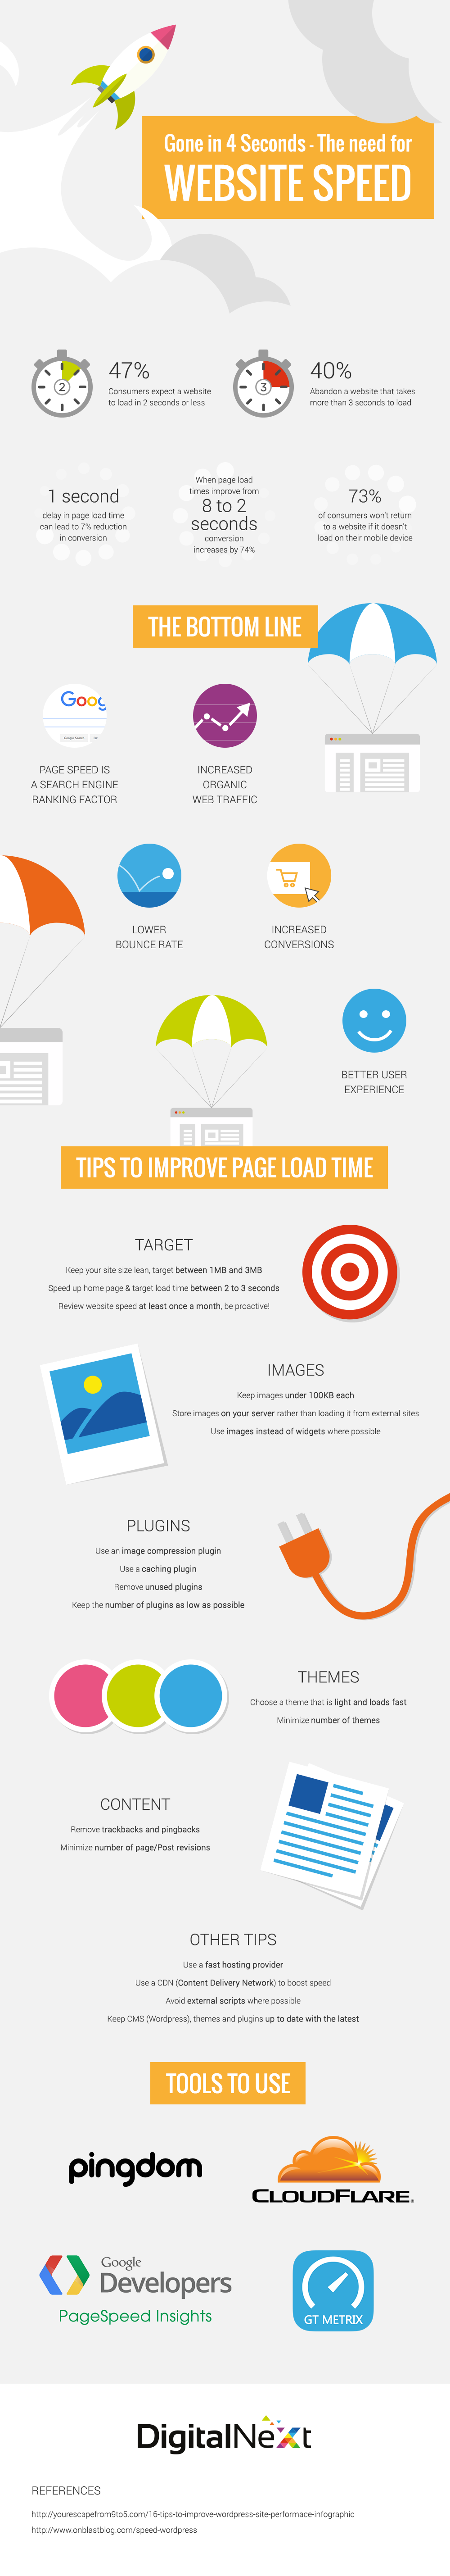 How-to-Improve-Your-Website-Speed-Infographic_png